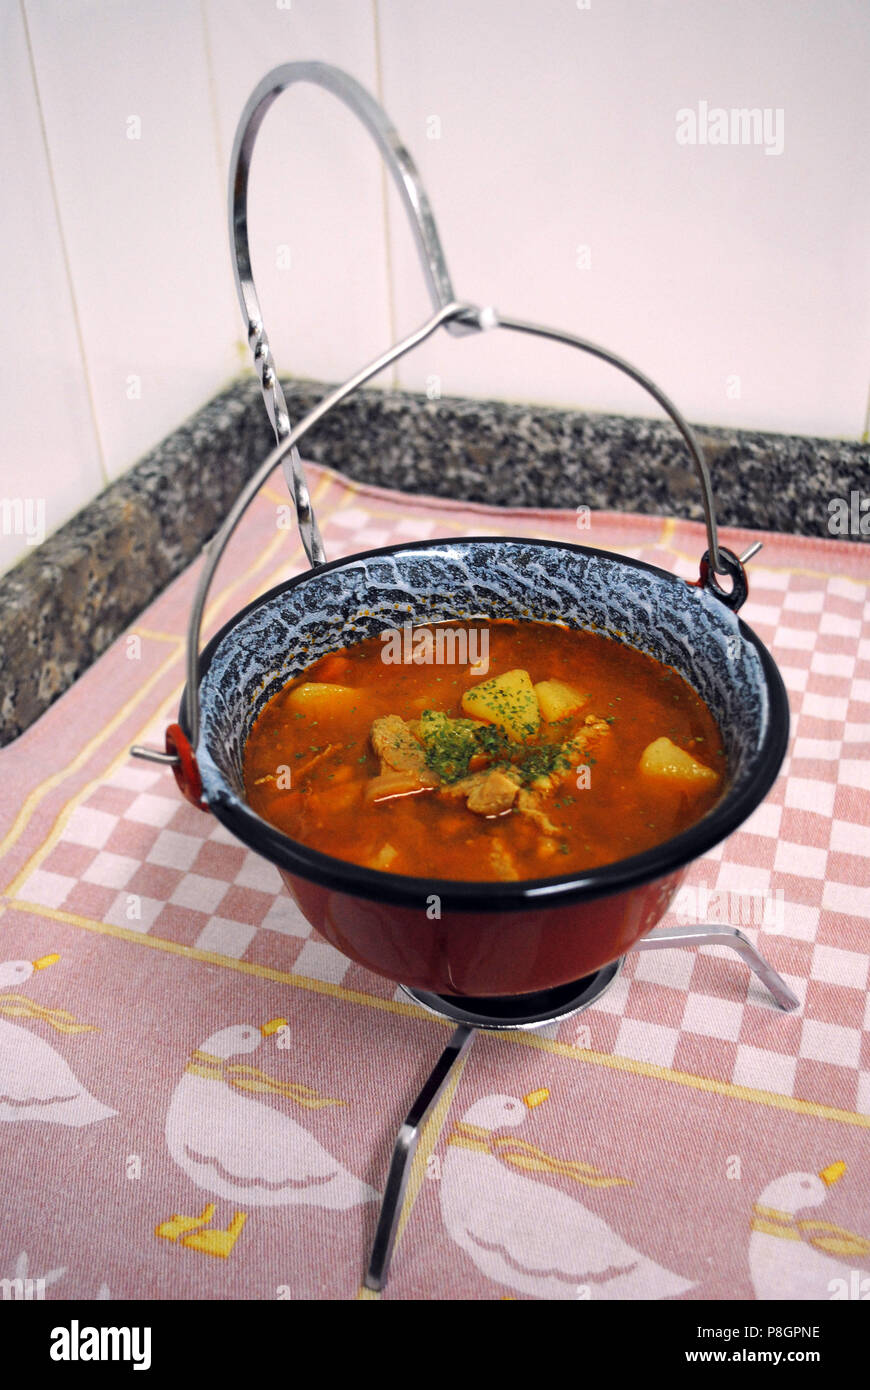 Traditional Hungarian Goulash Soup Served In A Miniature Cauldron Stock Photo Alamy